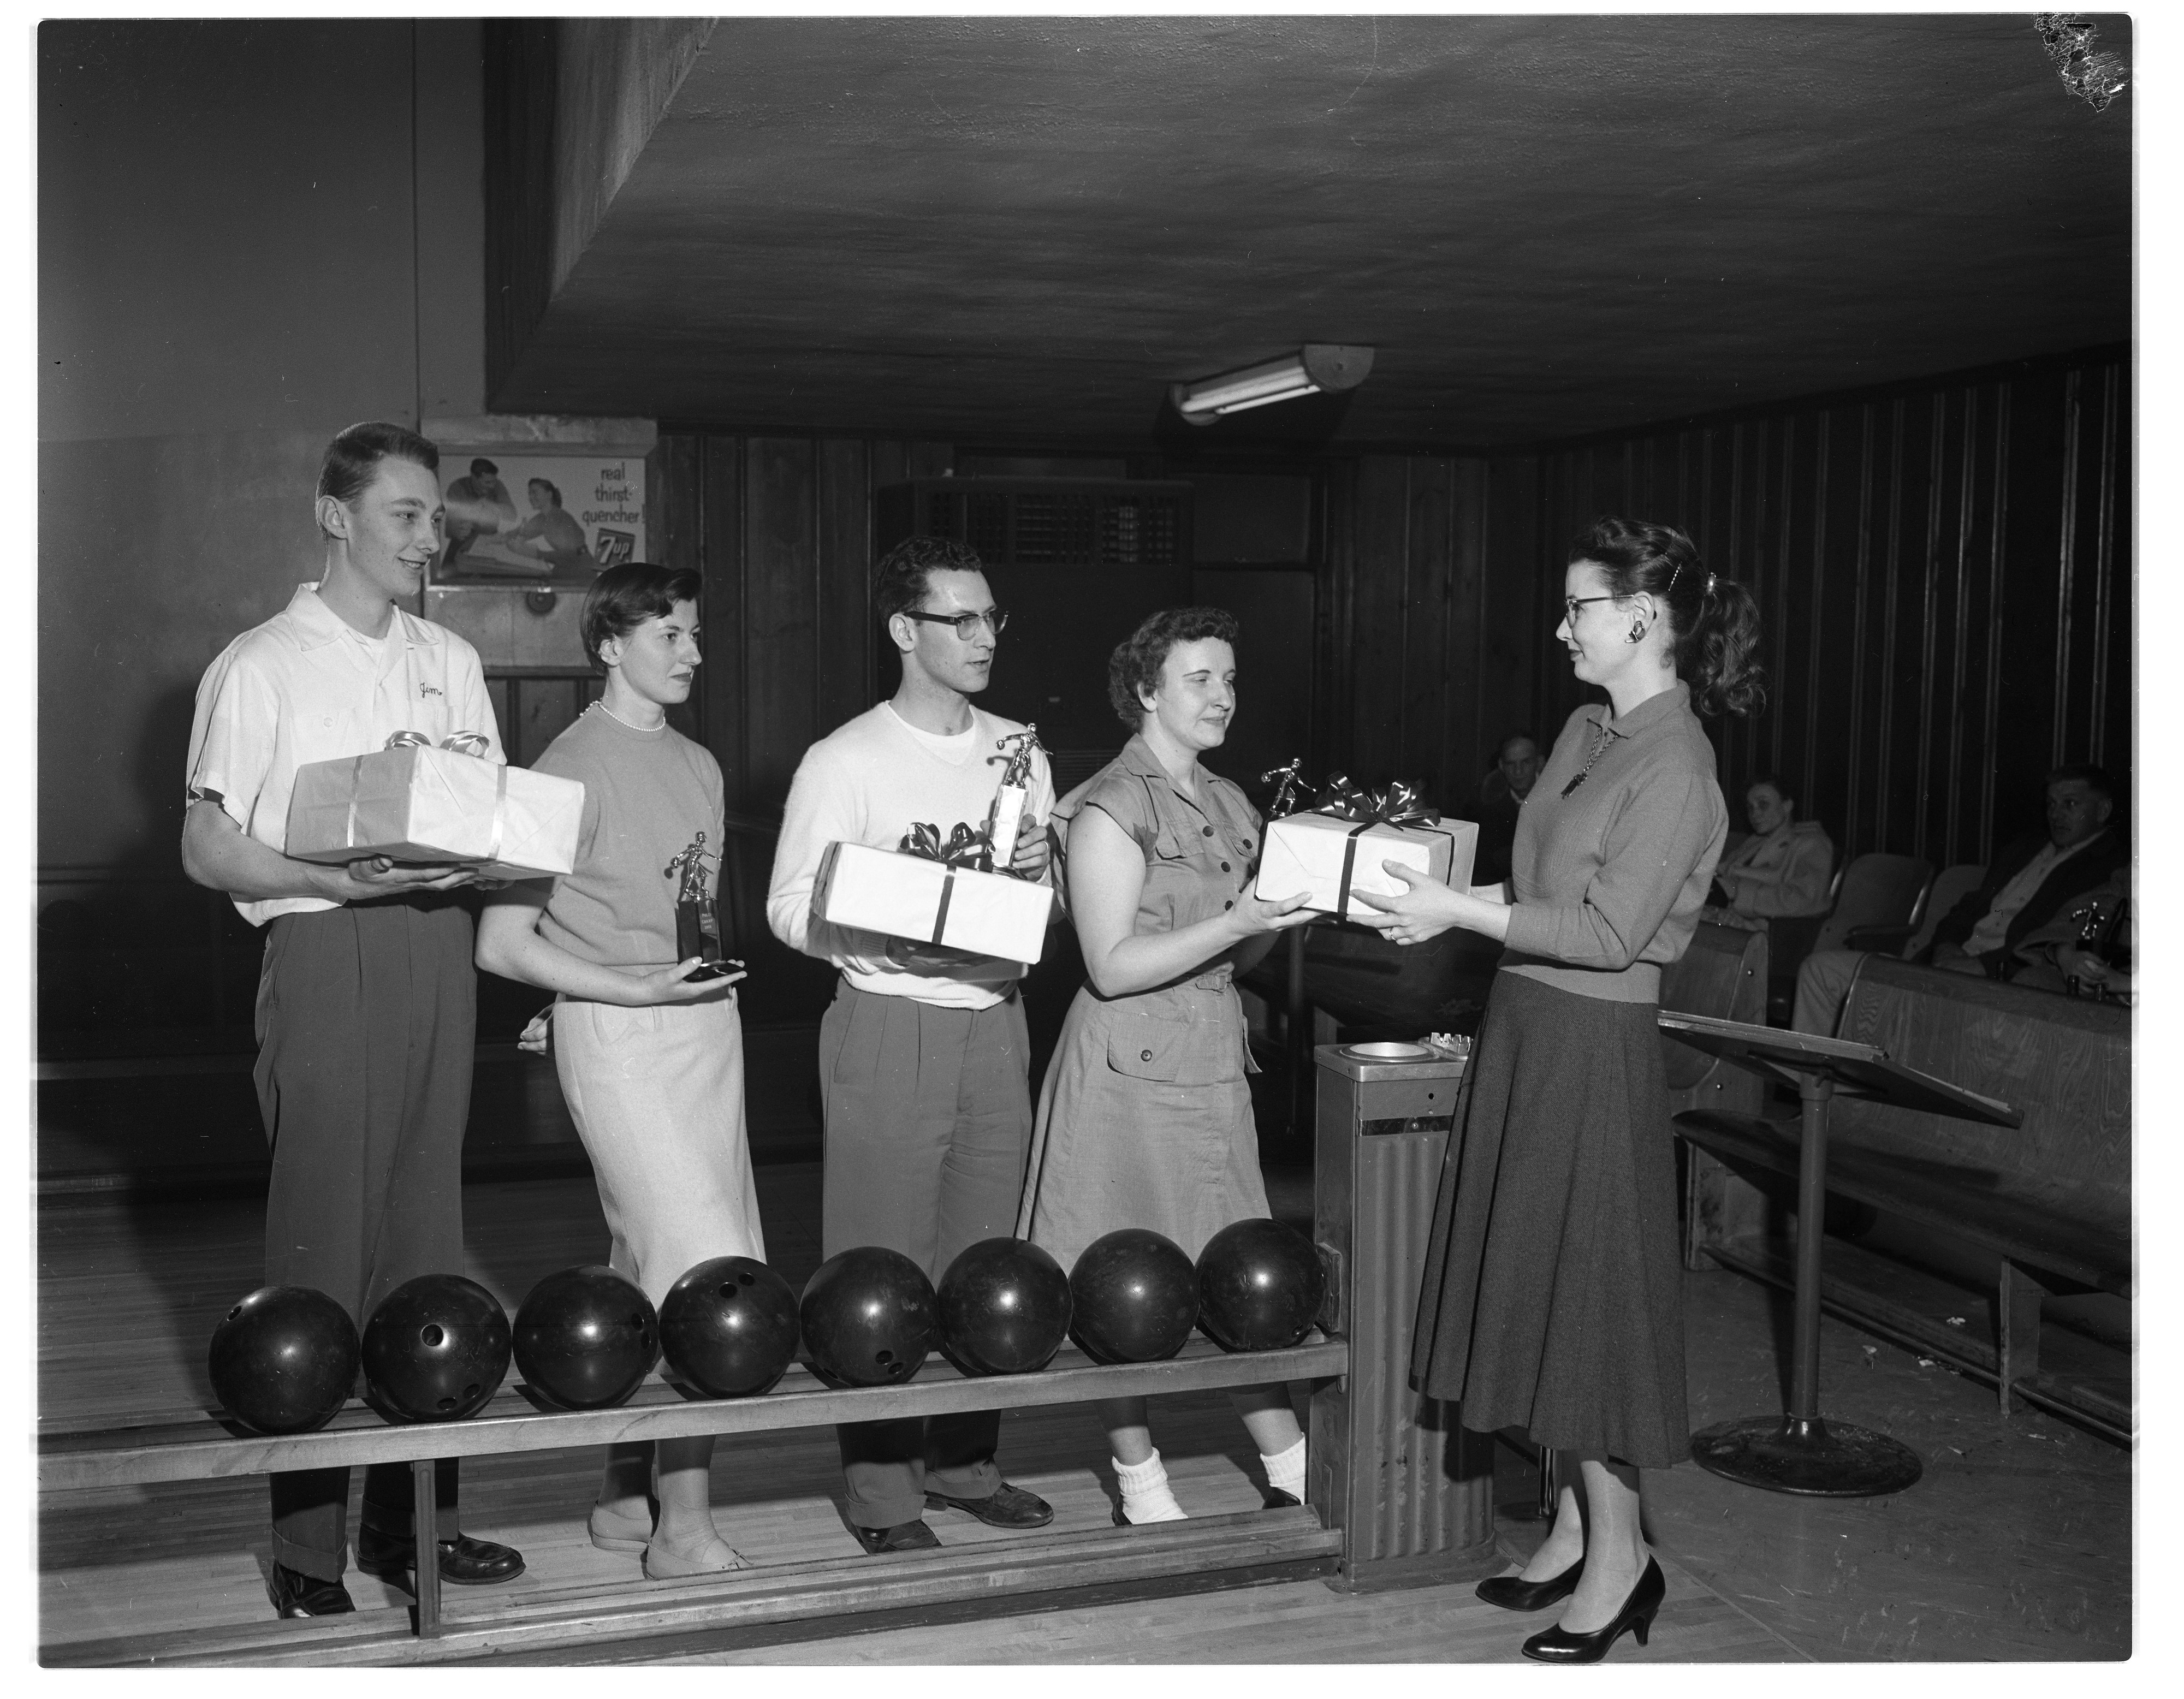 Local Winners in the National March of Dimes Bowling Tournament, February 1958 image